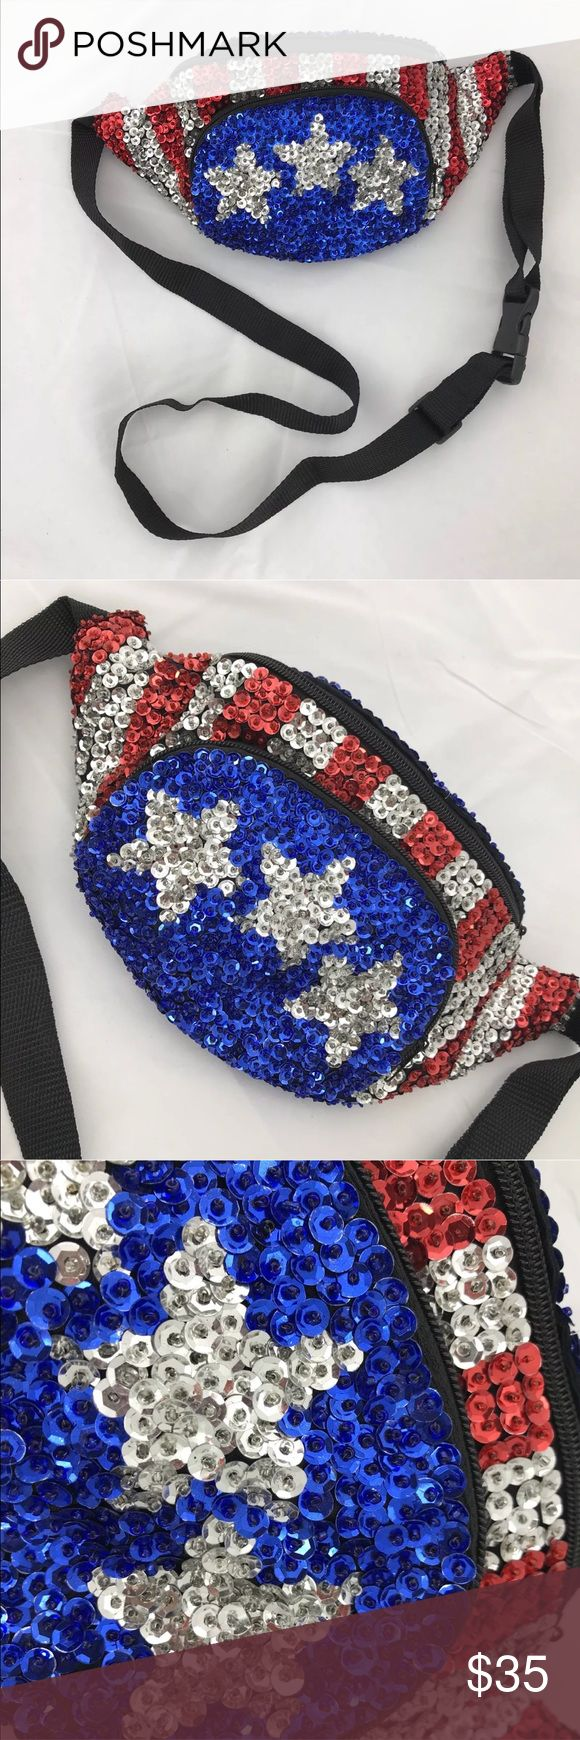 "VTG Sequin Fanny Pack Bag American Kendall Jenner Vintage 80s 90s Sequin American Flag Fanny pack waist Bag  SIZE: ONE SIZE  MEASUREMENTS: Width 11"" Length: 6"" Strap is adjustable   CONDITION: Excellent Vintage Condition  EXACTLY AS PHOTOGRAPHED  DESCRIPTION: Sequin American Flag Fanny pack waist Bag. Definitely Stunner little piece here. Fully sequenced out stripes and stars in red/white/blue flag design. The strap and the backside are black. Vintage Bags Mini Bags"